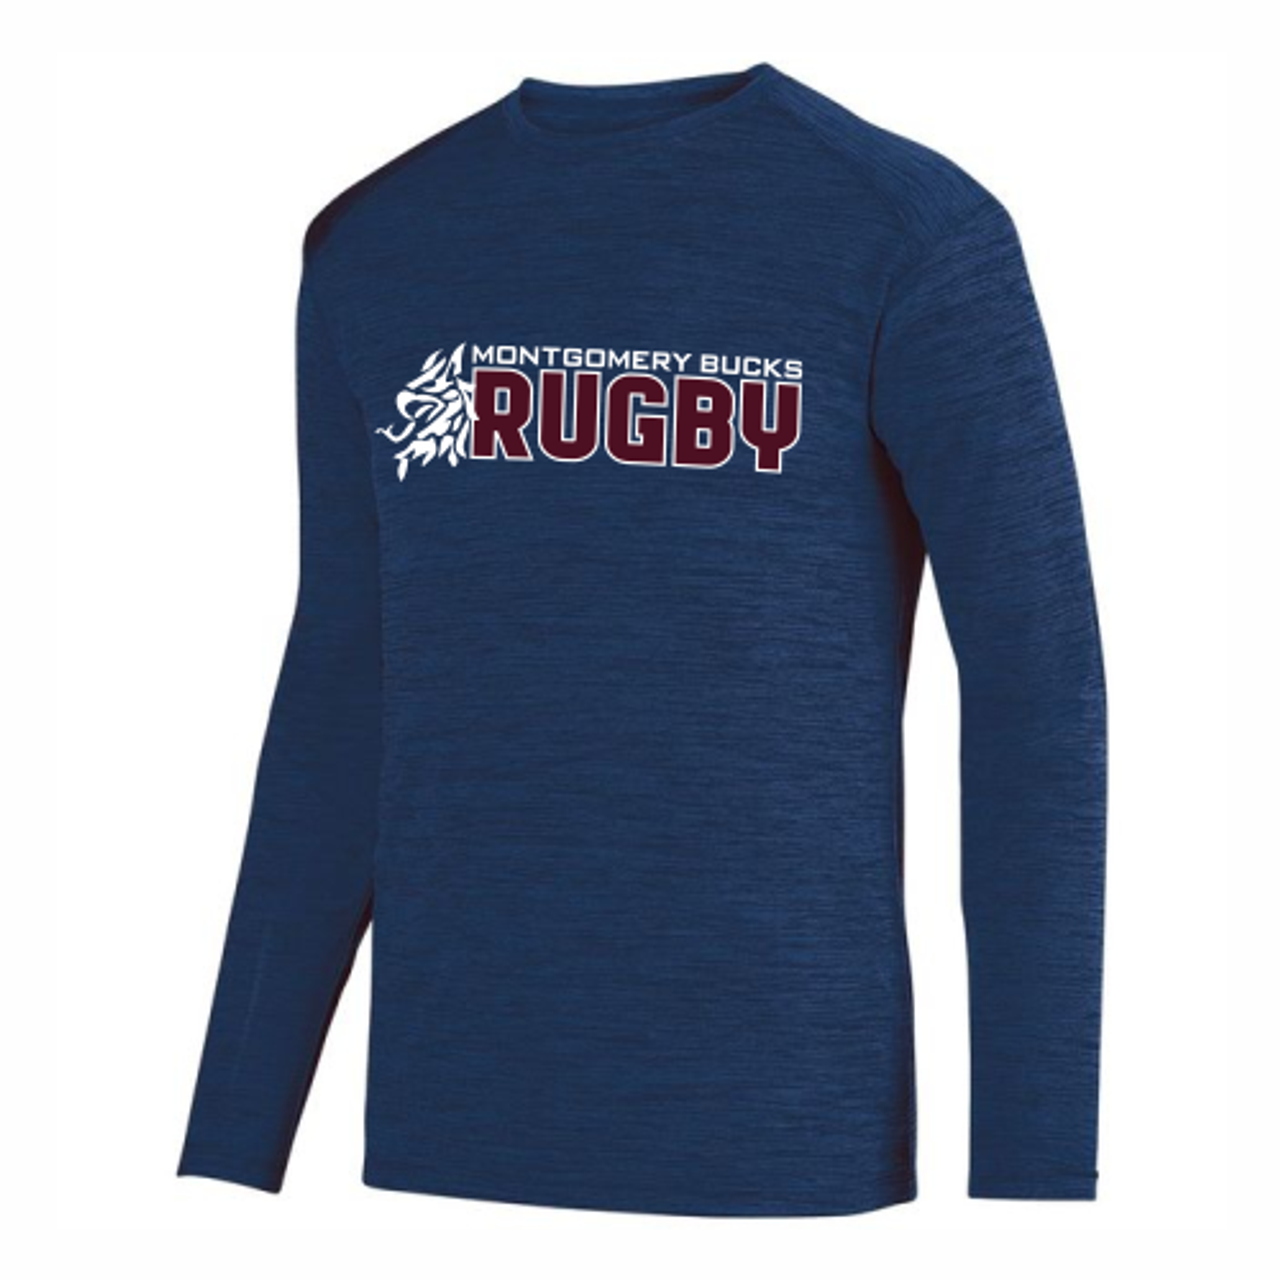 MB Rugby Tonal Performance Tee, Navy